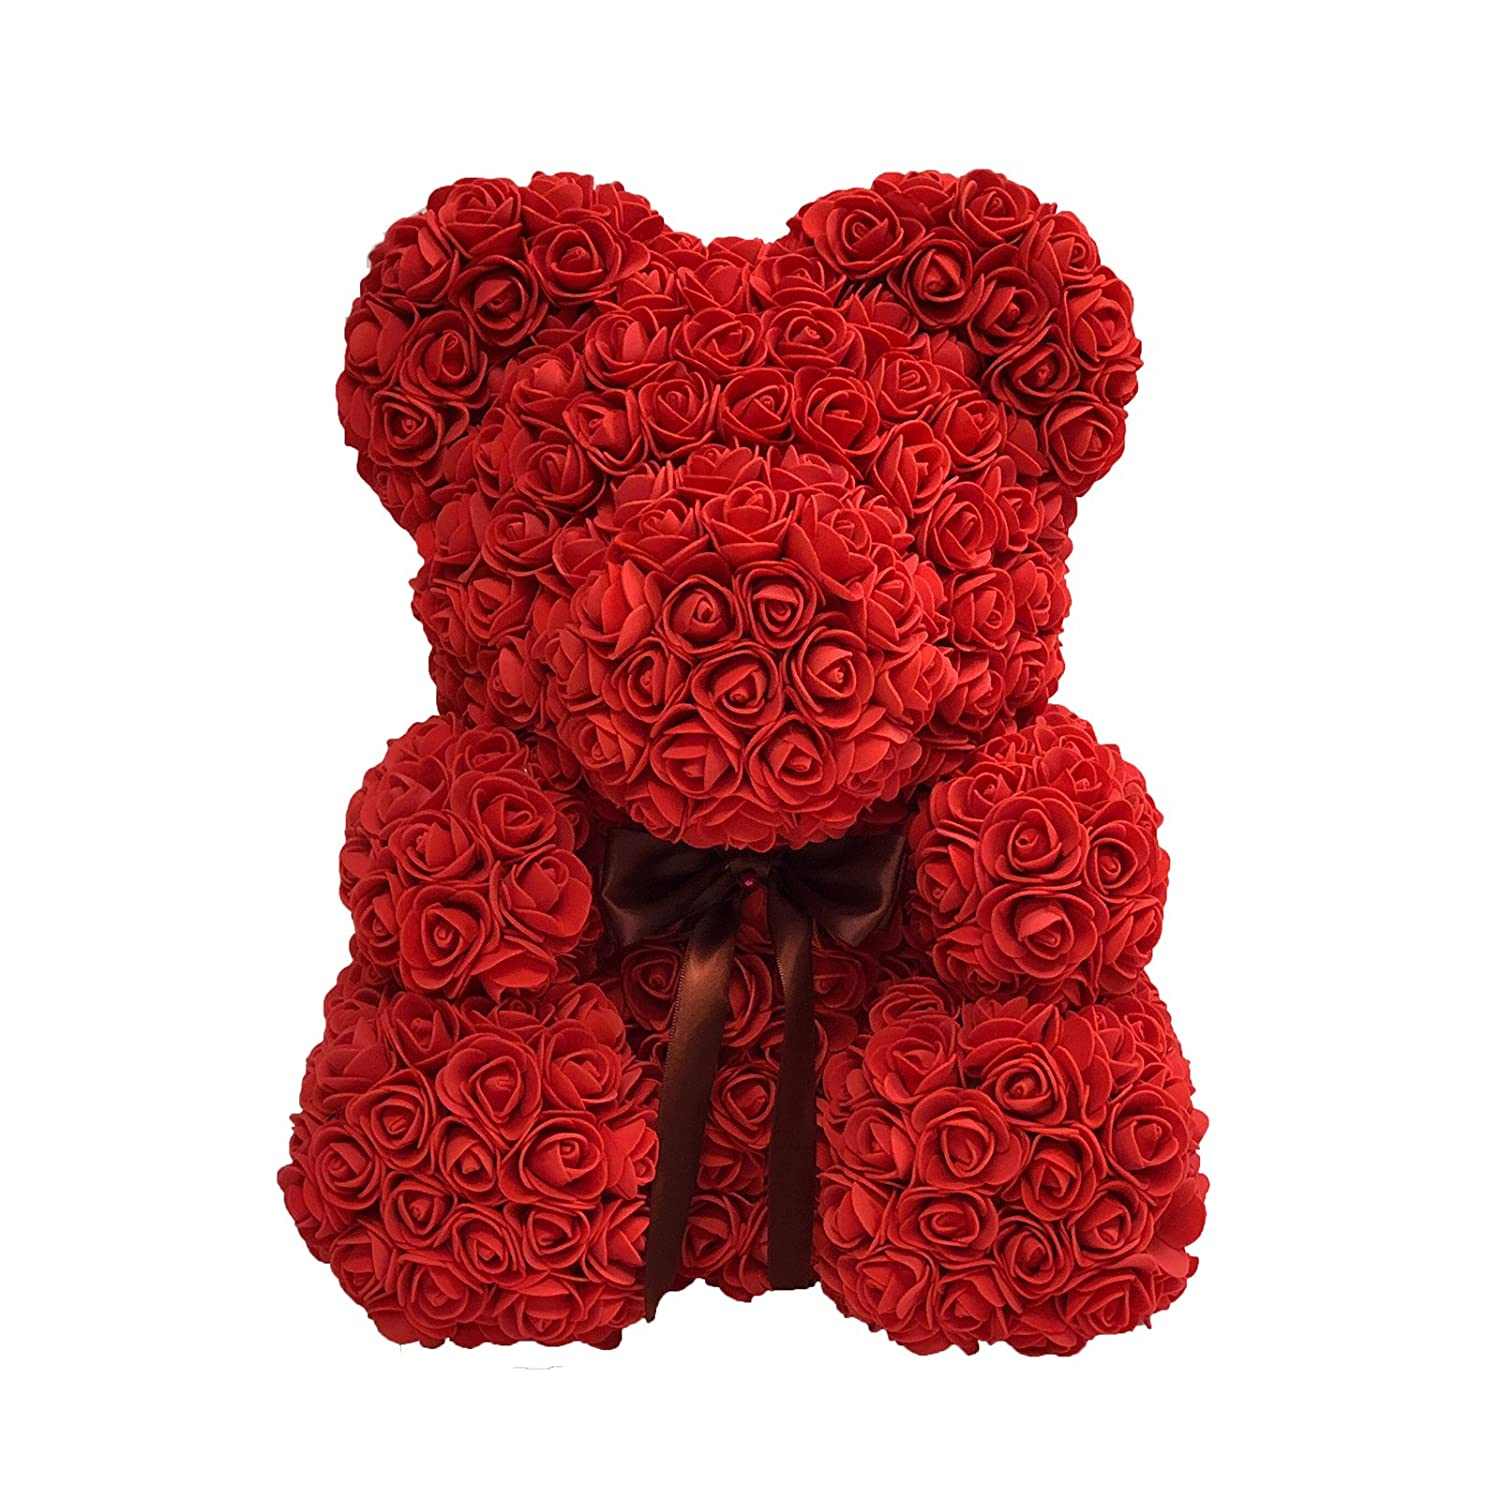 Amazon rose bear teddy bear cub forever artificial rose amazon rose bear teddy bear cub forever artificial rose anniversary christmas valentines gift 14 home kitchen izmirmasajfo